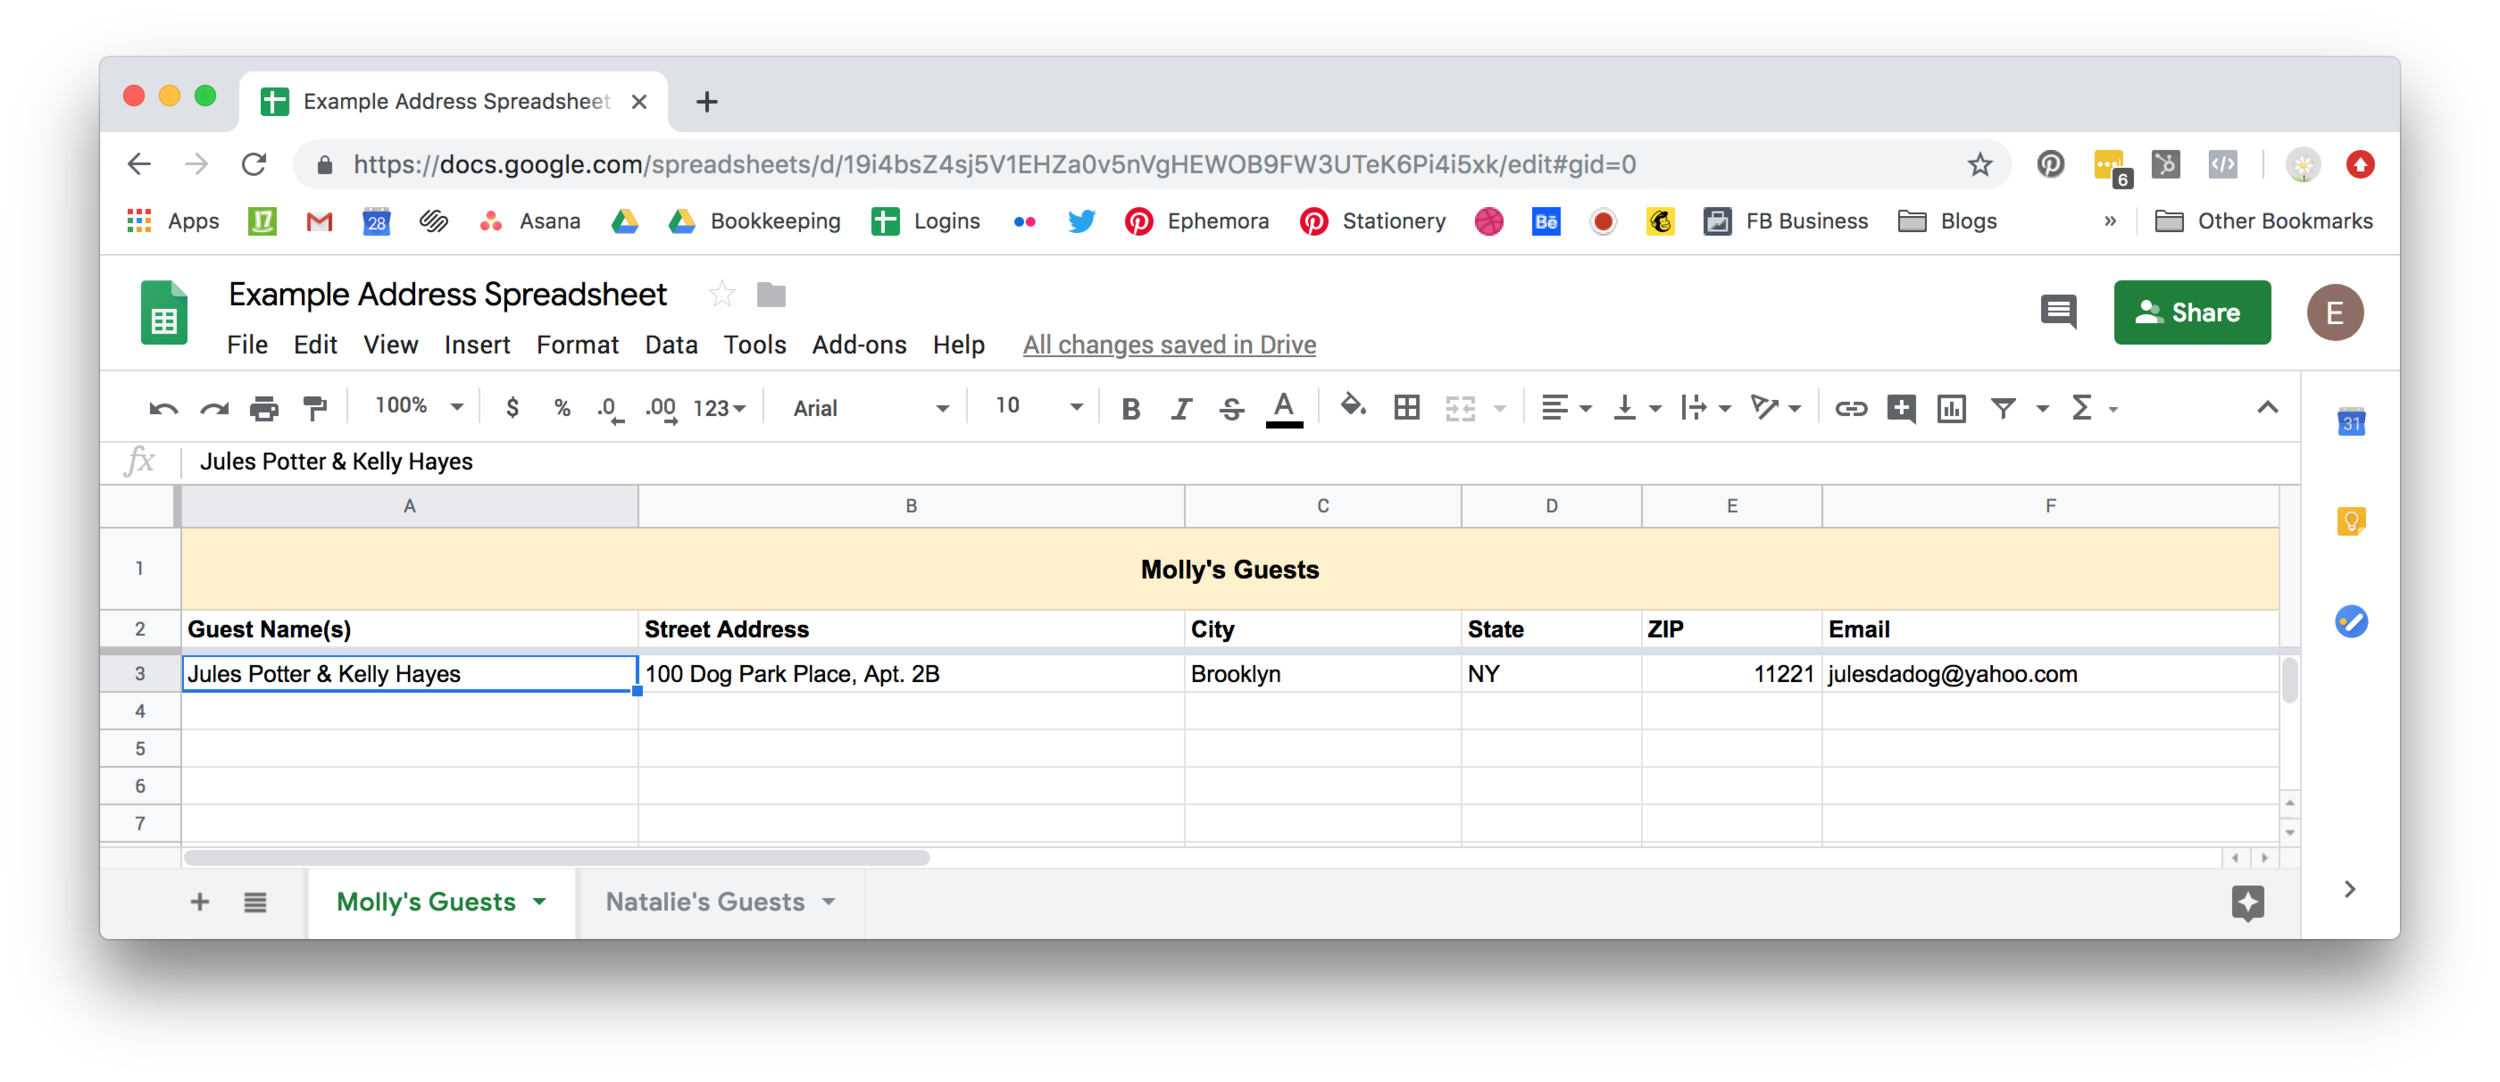 A screenshot of our example Address Spreadsheet.